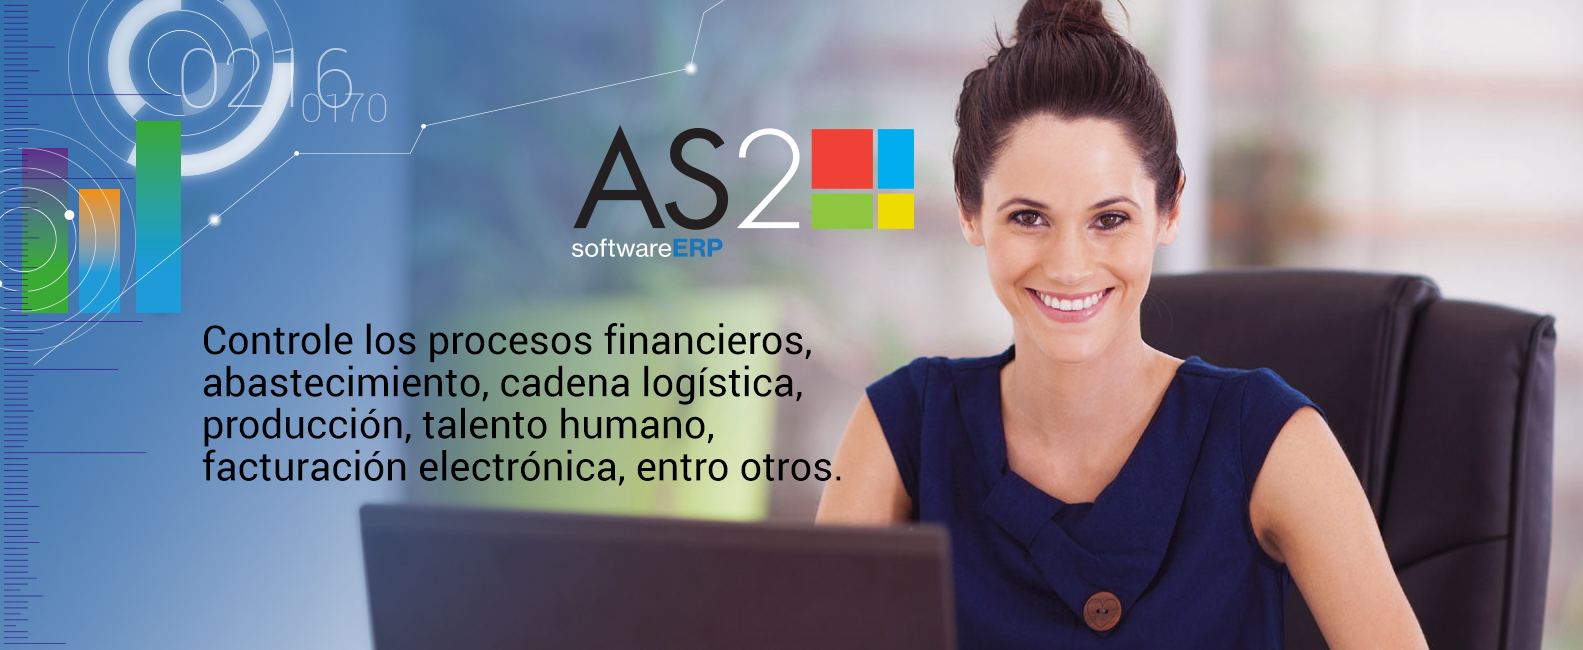 as2 software